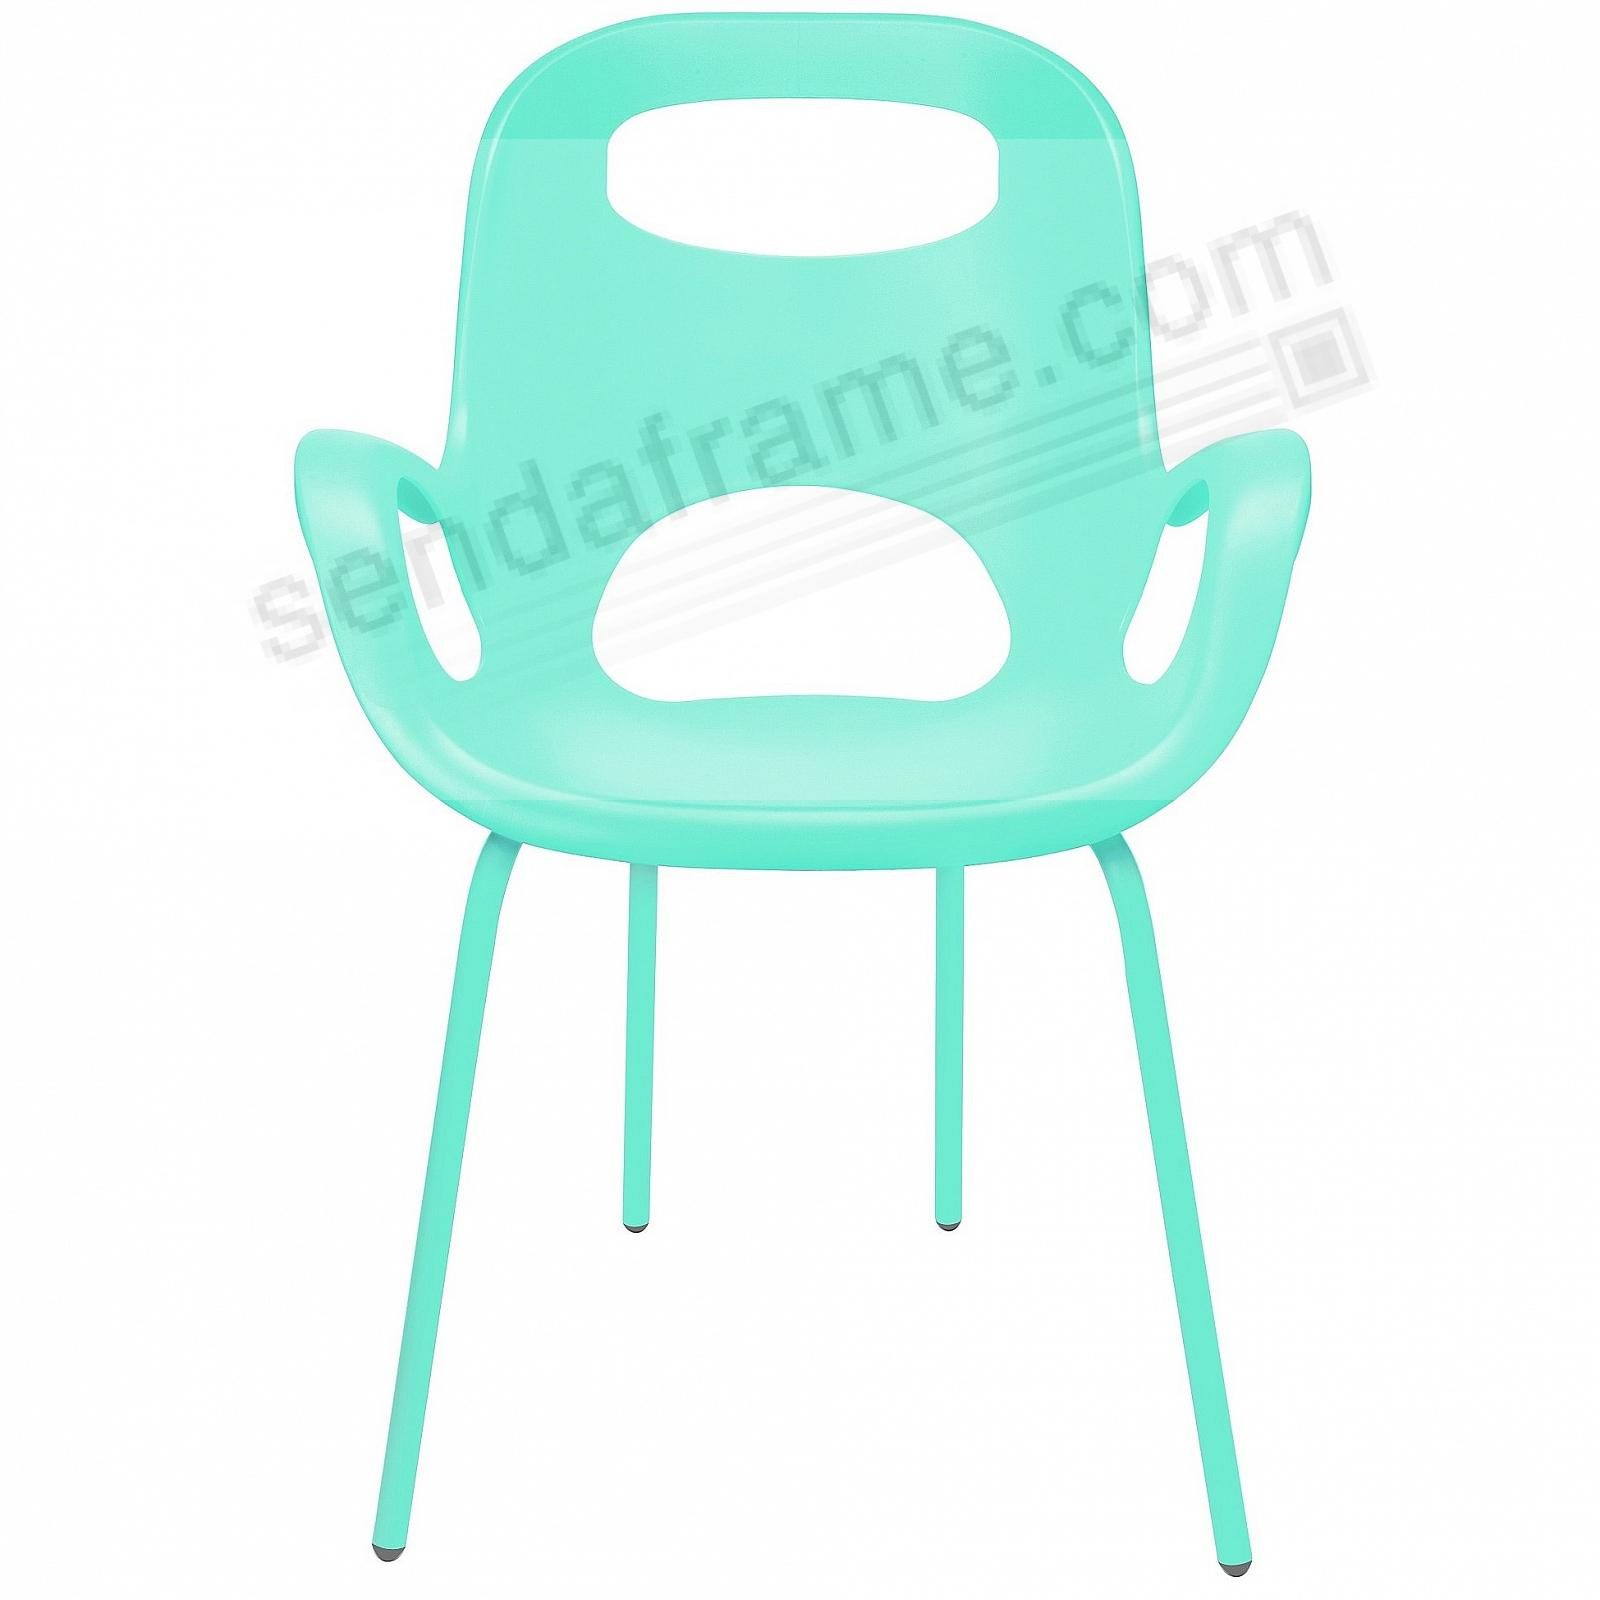 The Original OH CHAIR - SURF BLUE - by Umbra+®